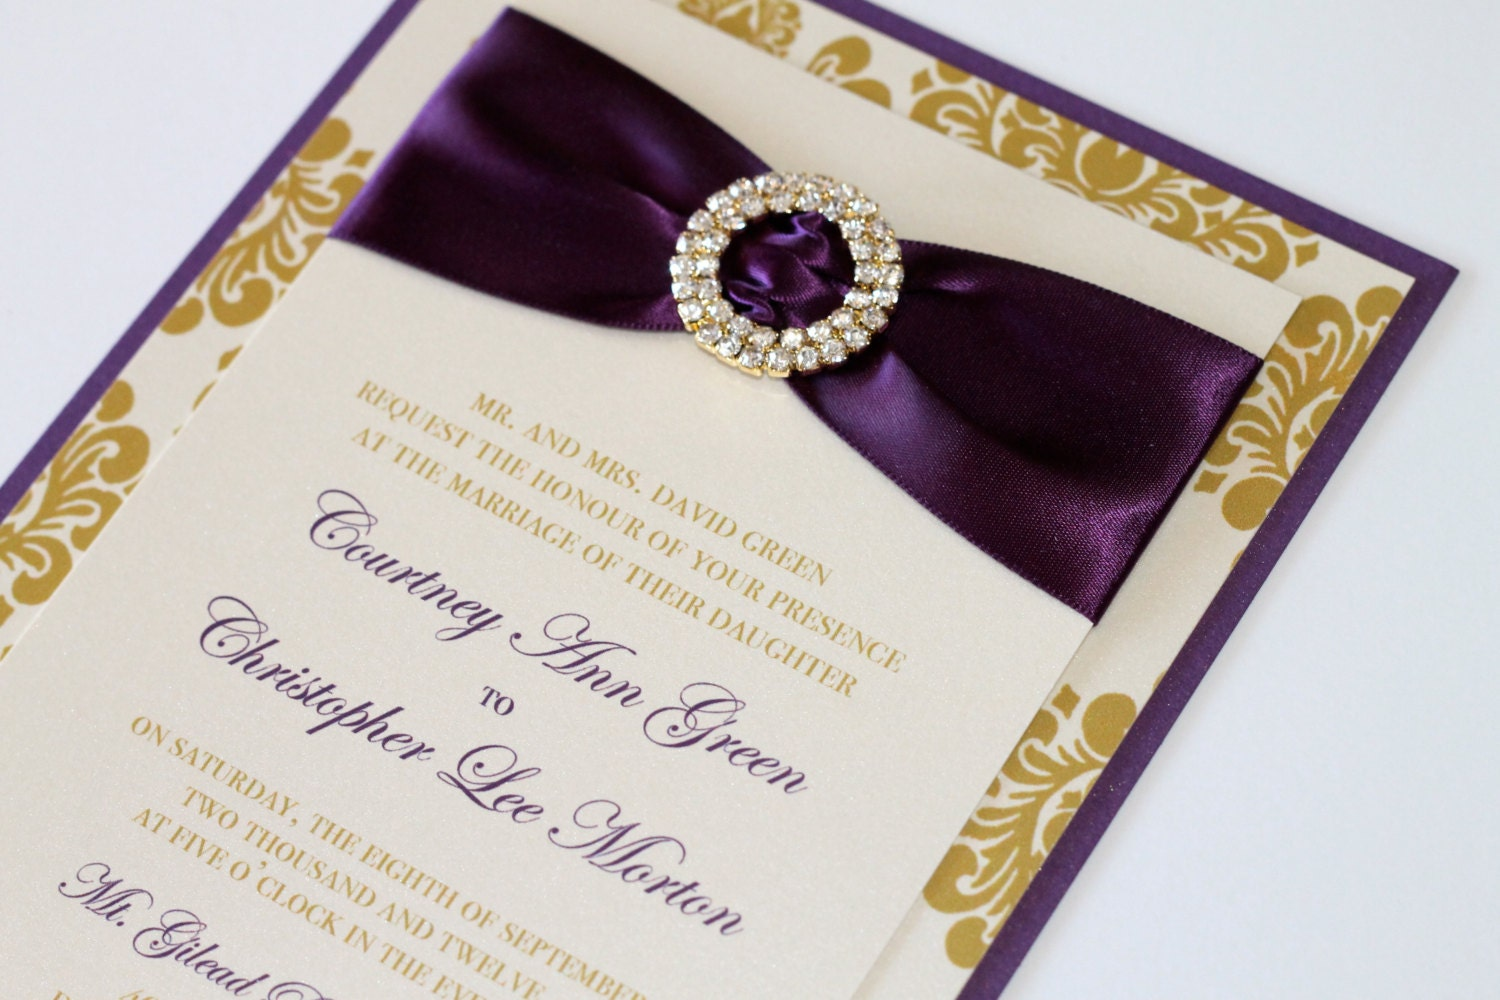 Courtney Damask Wedding Invitation Embellished Wedding – Gold and Purple Wedding Invitations